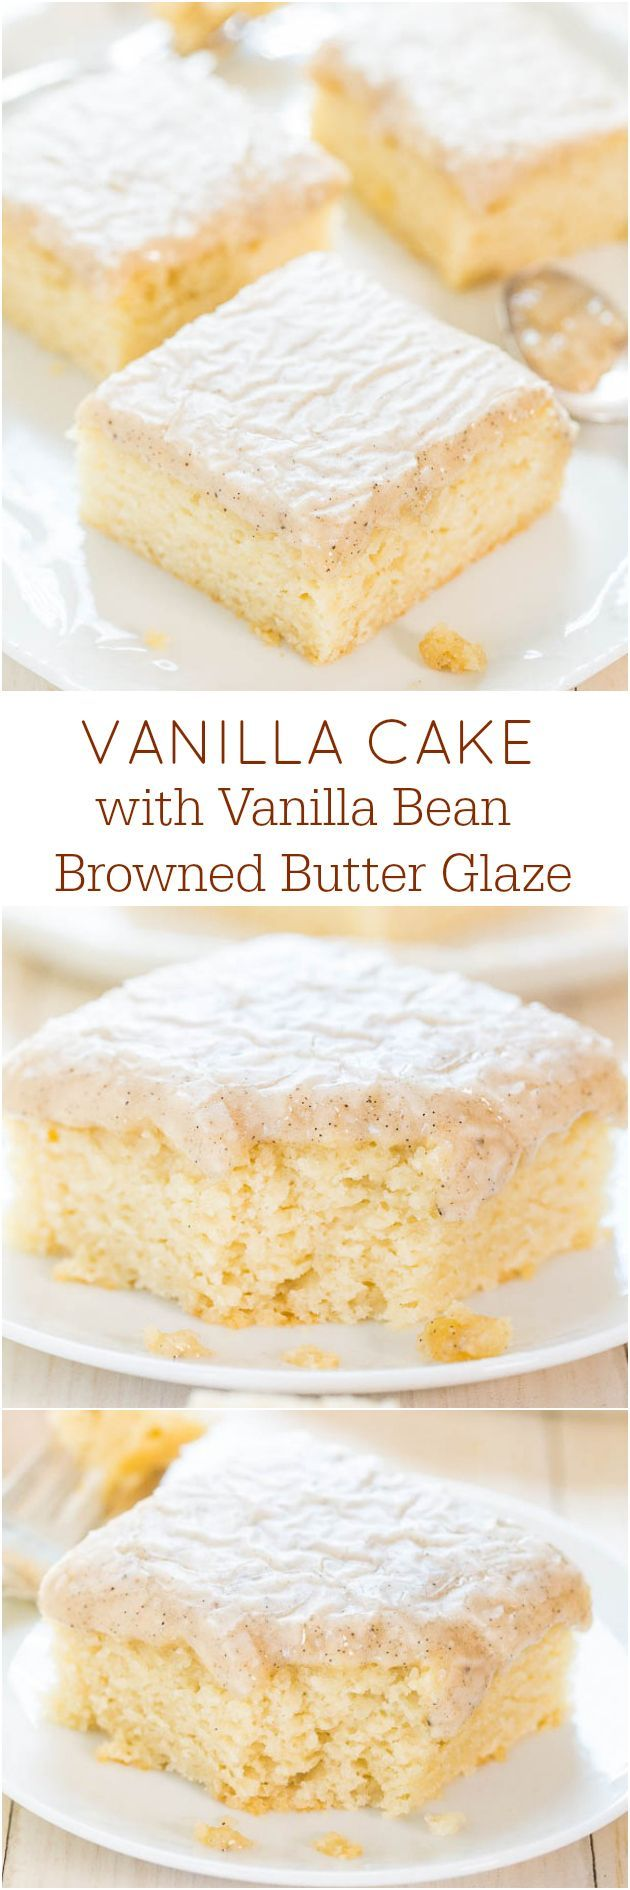 Vanilla Cake with Vanilla Bean Browned Butter Glaze | Nosh-up